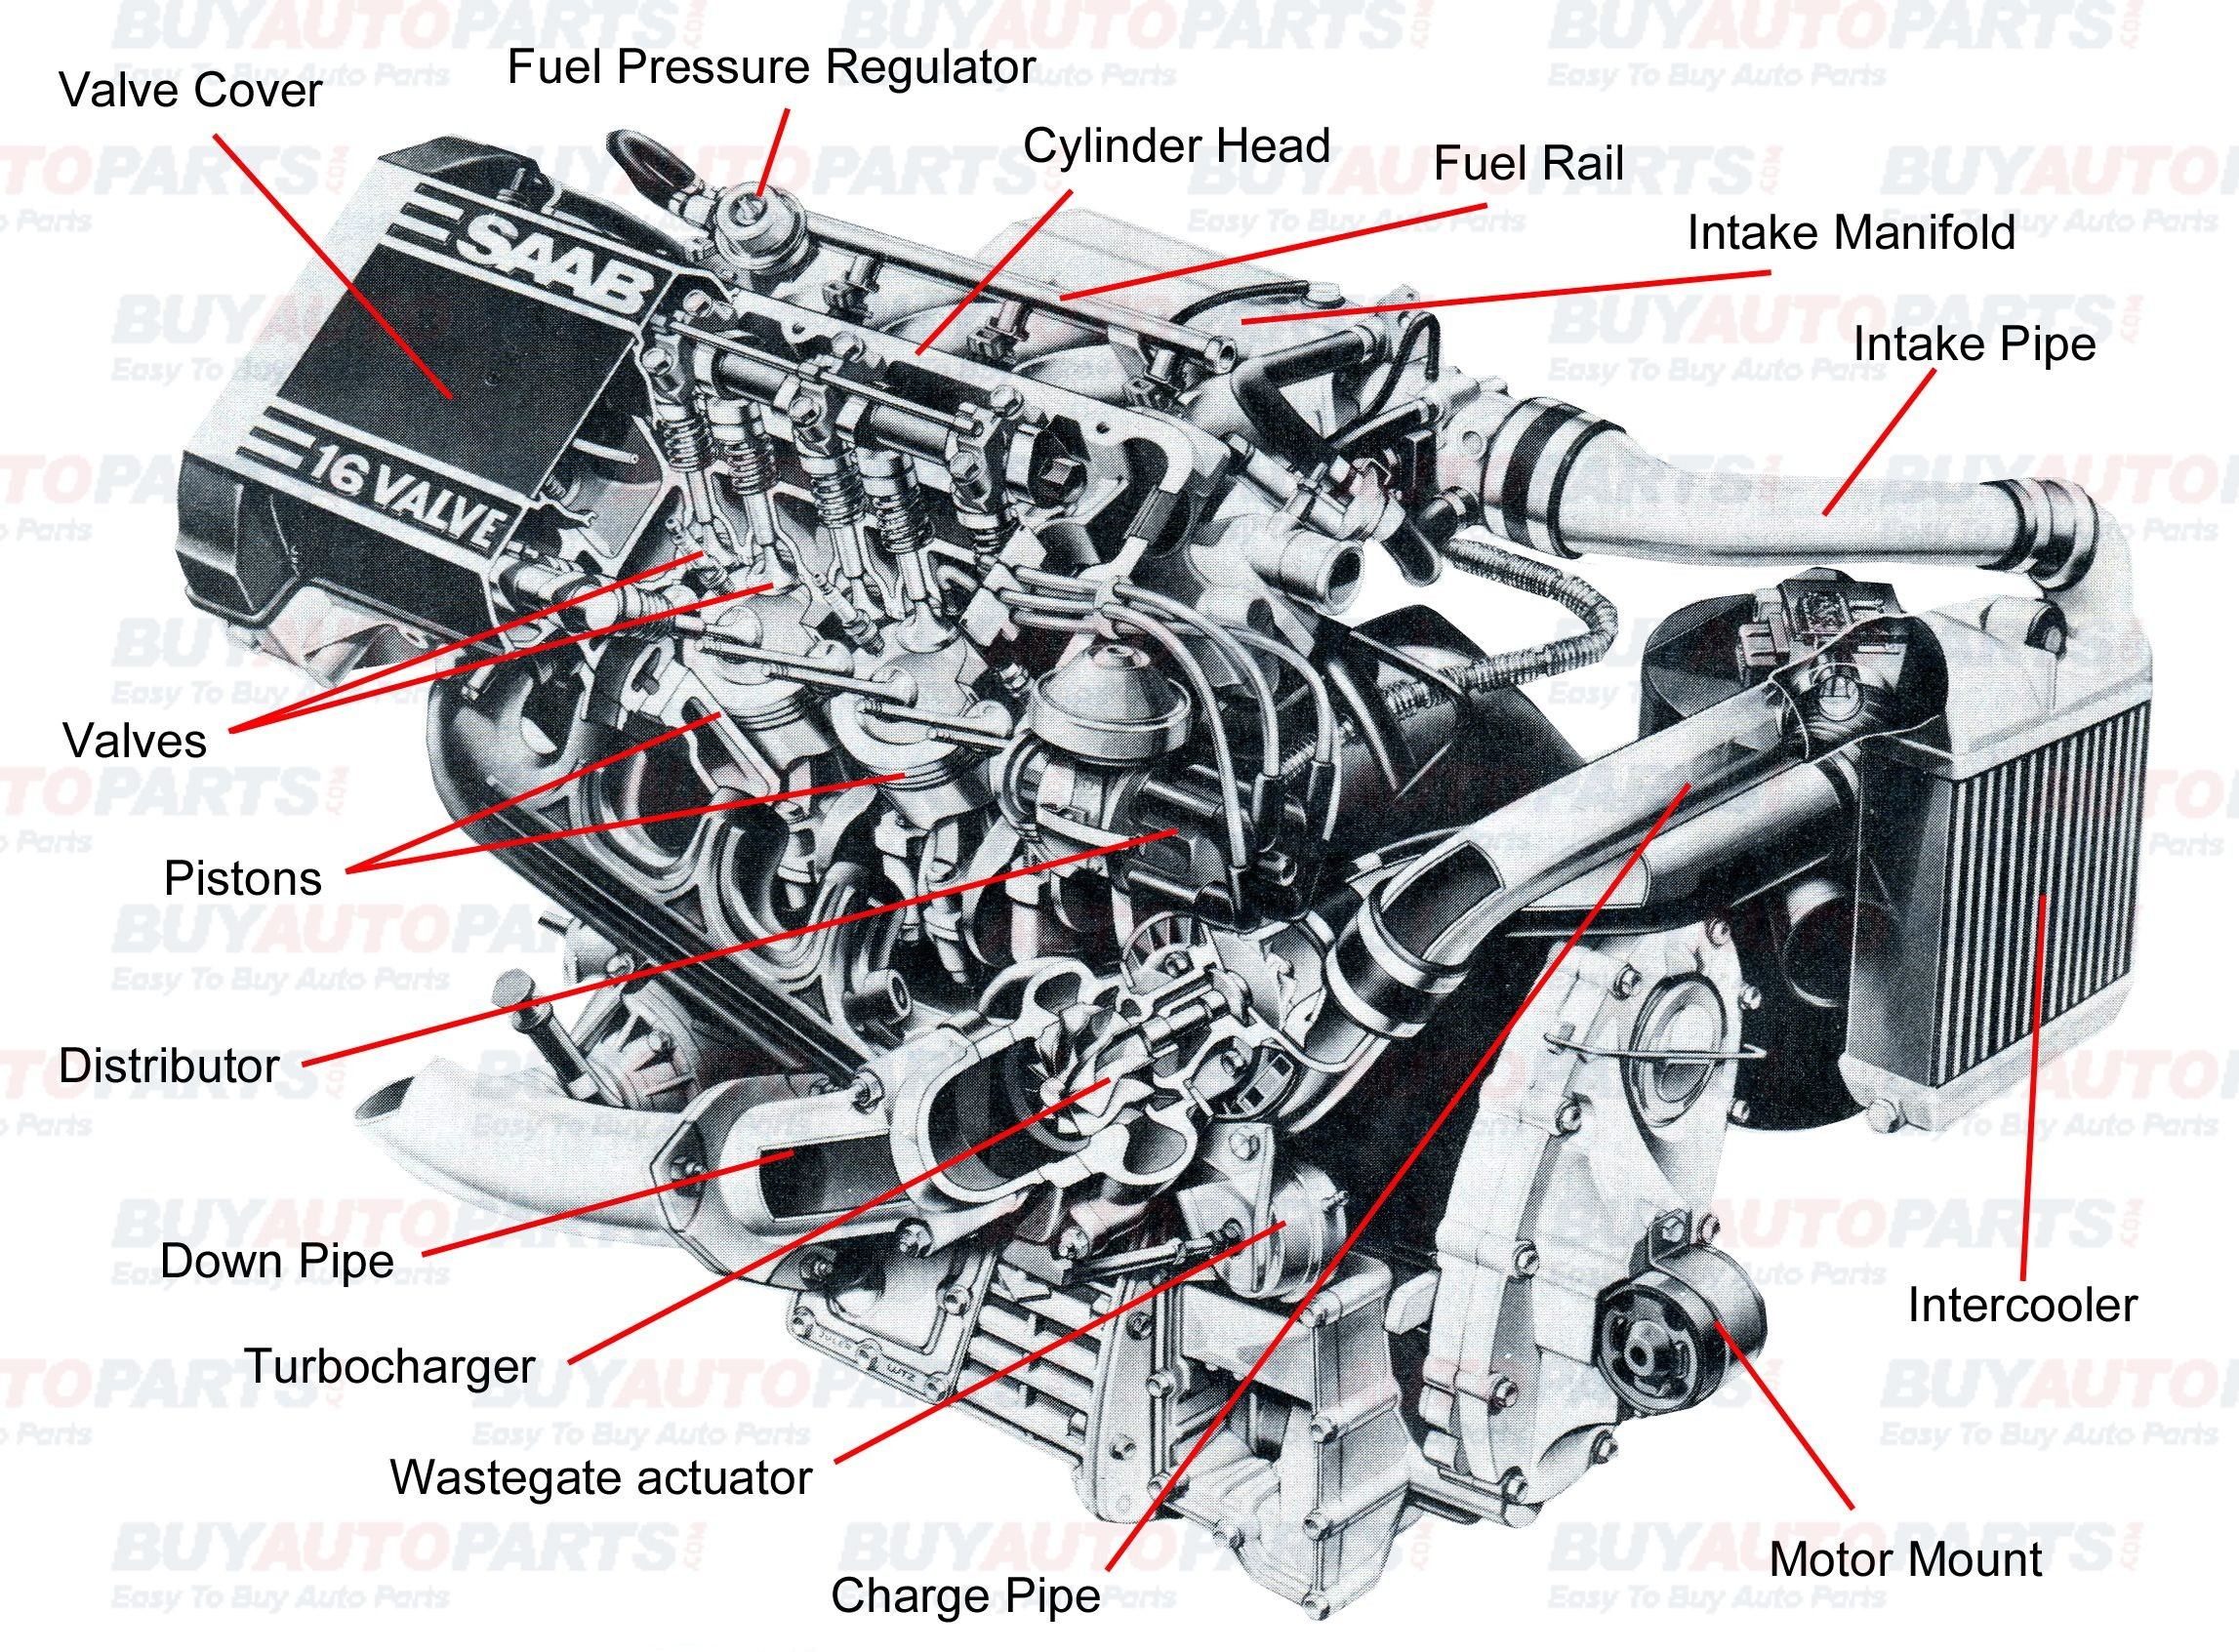 Rotary Motor Diagram Pin by Jimmiejanet Testellamwfz On What Does An Engine with Turbo Of Rotary Motor Diagram